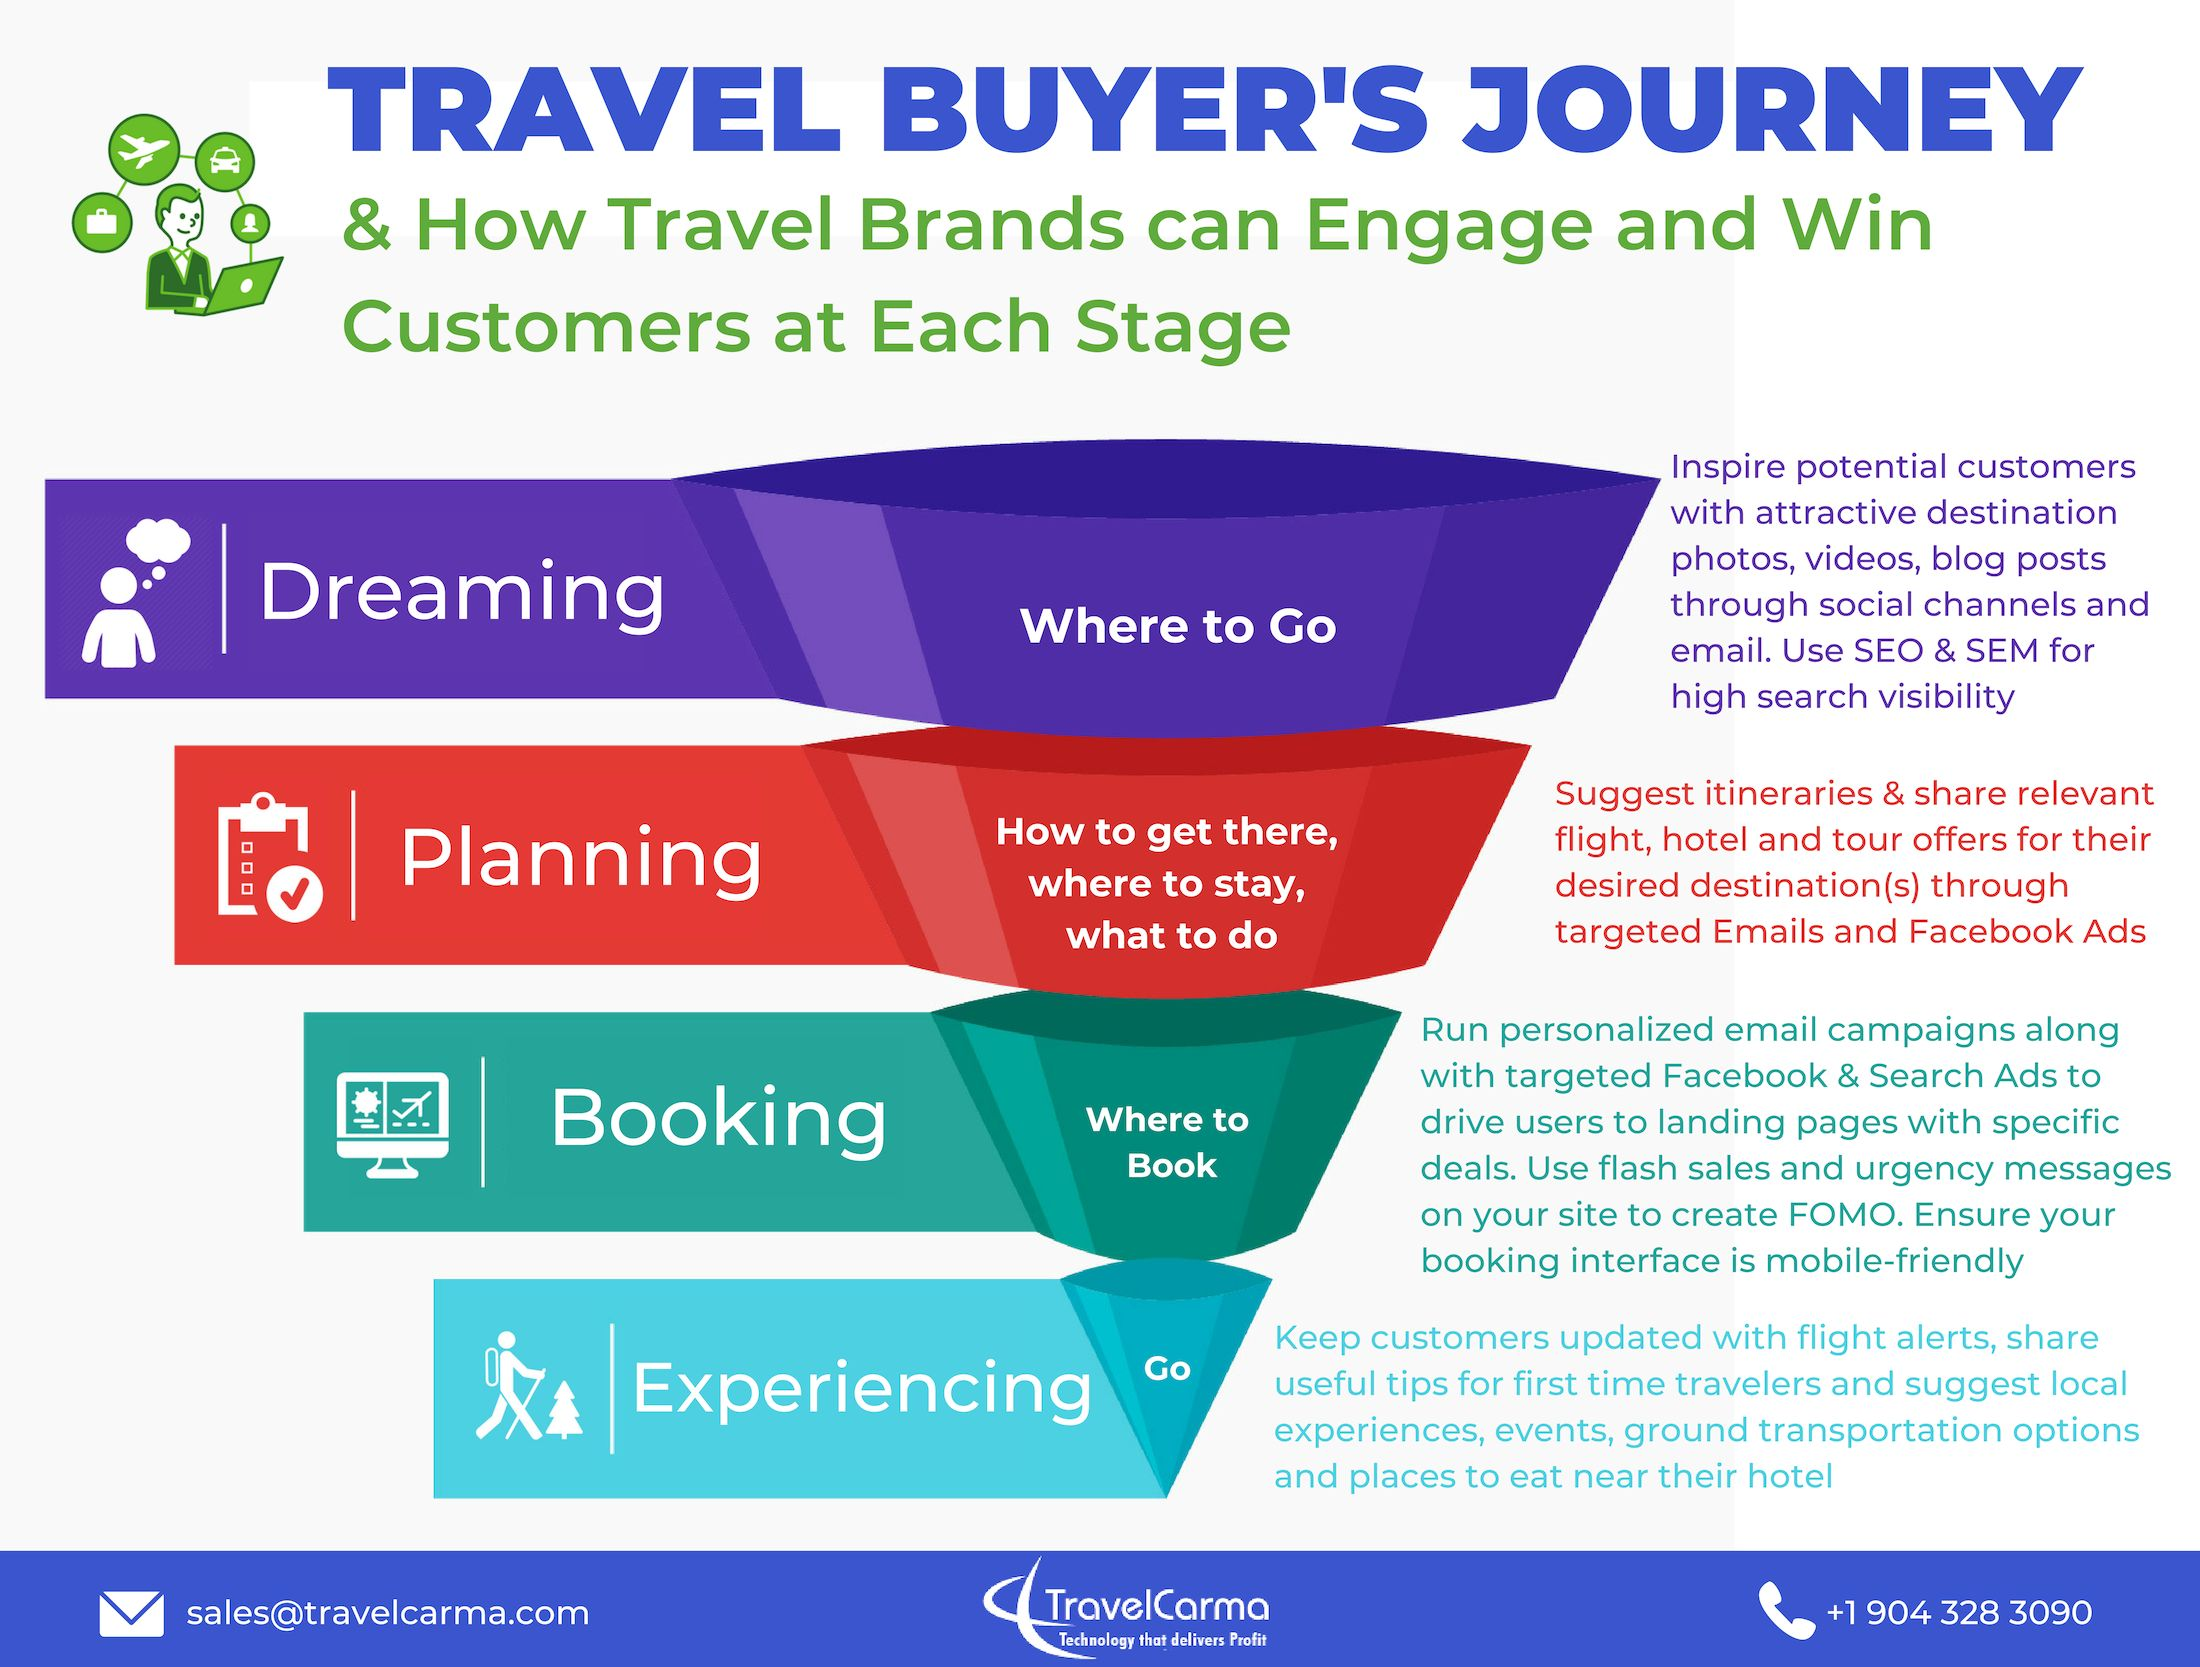 Travel Buyer Journey - How to engage customers at each stage